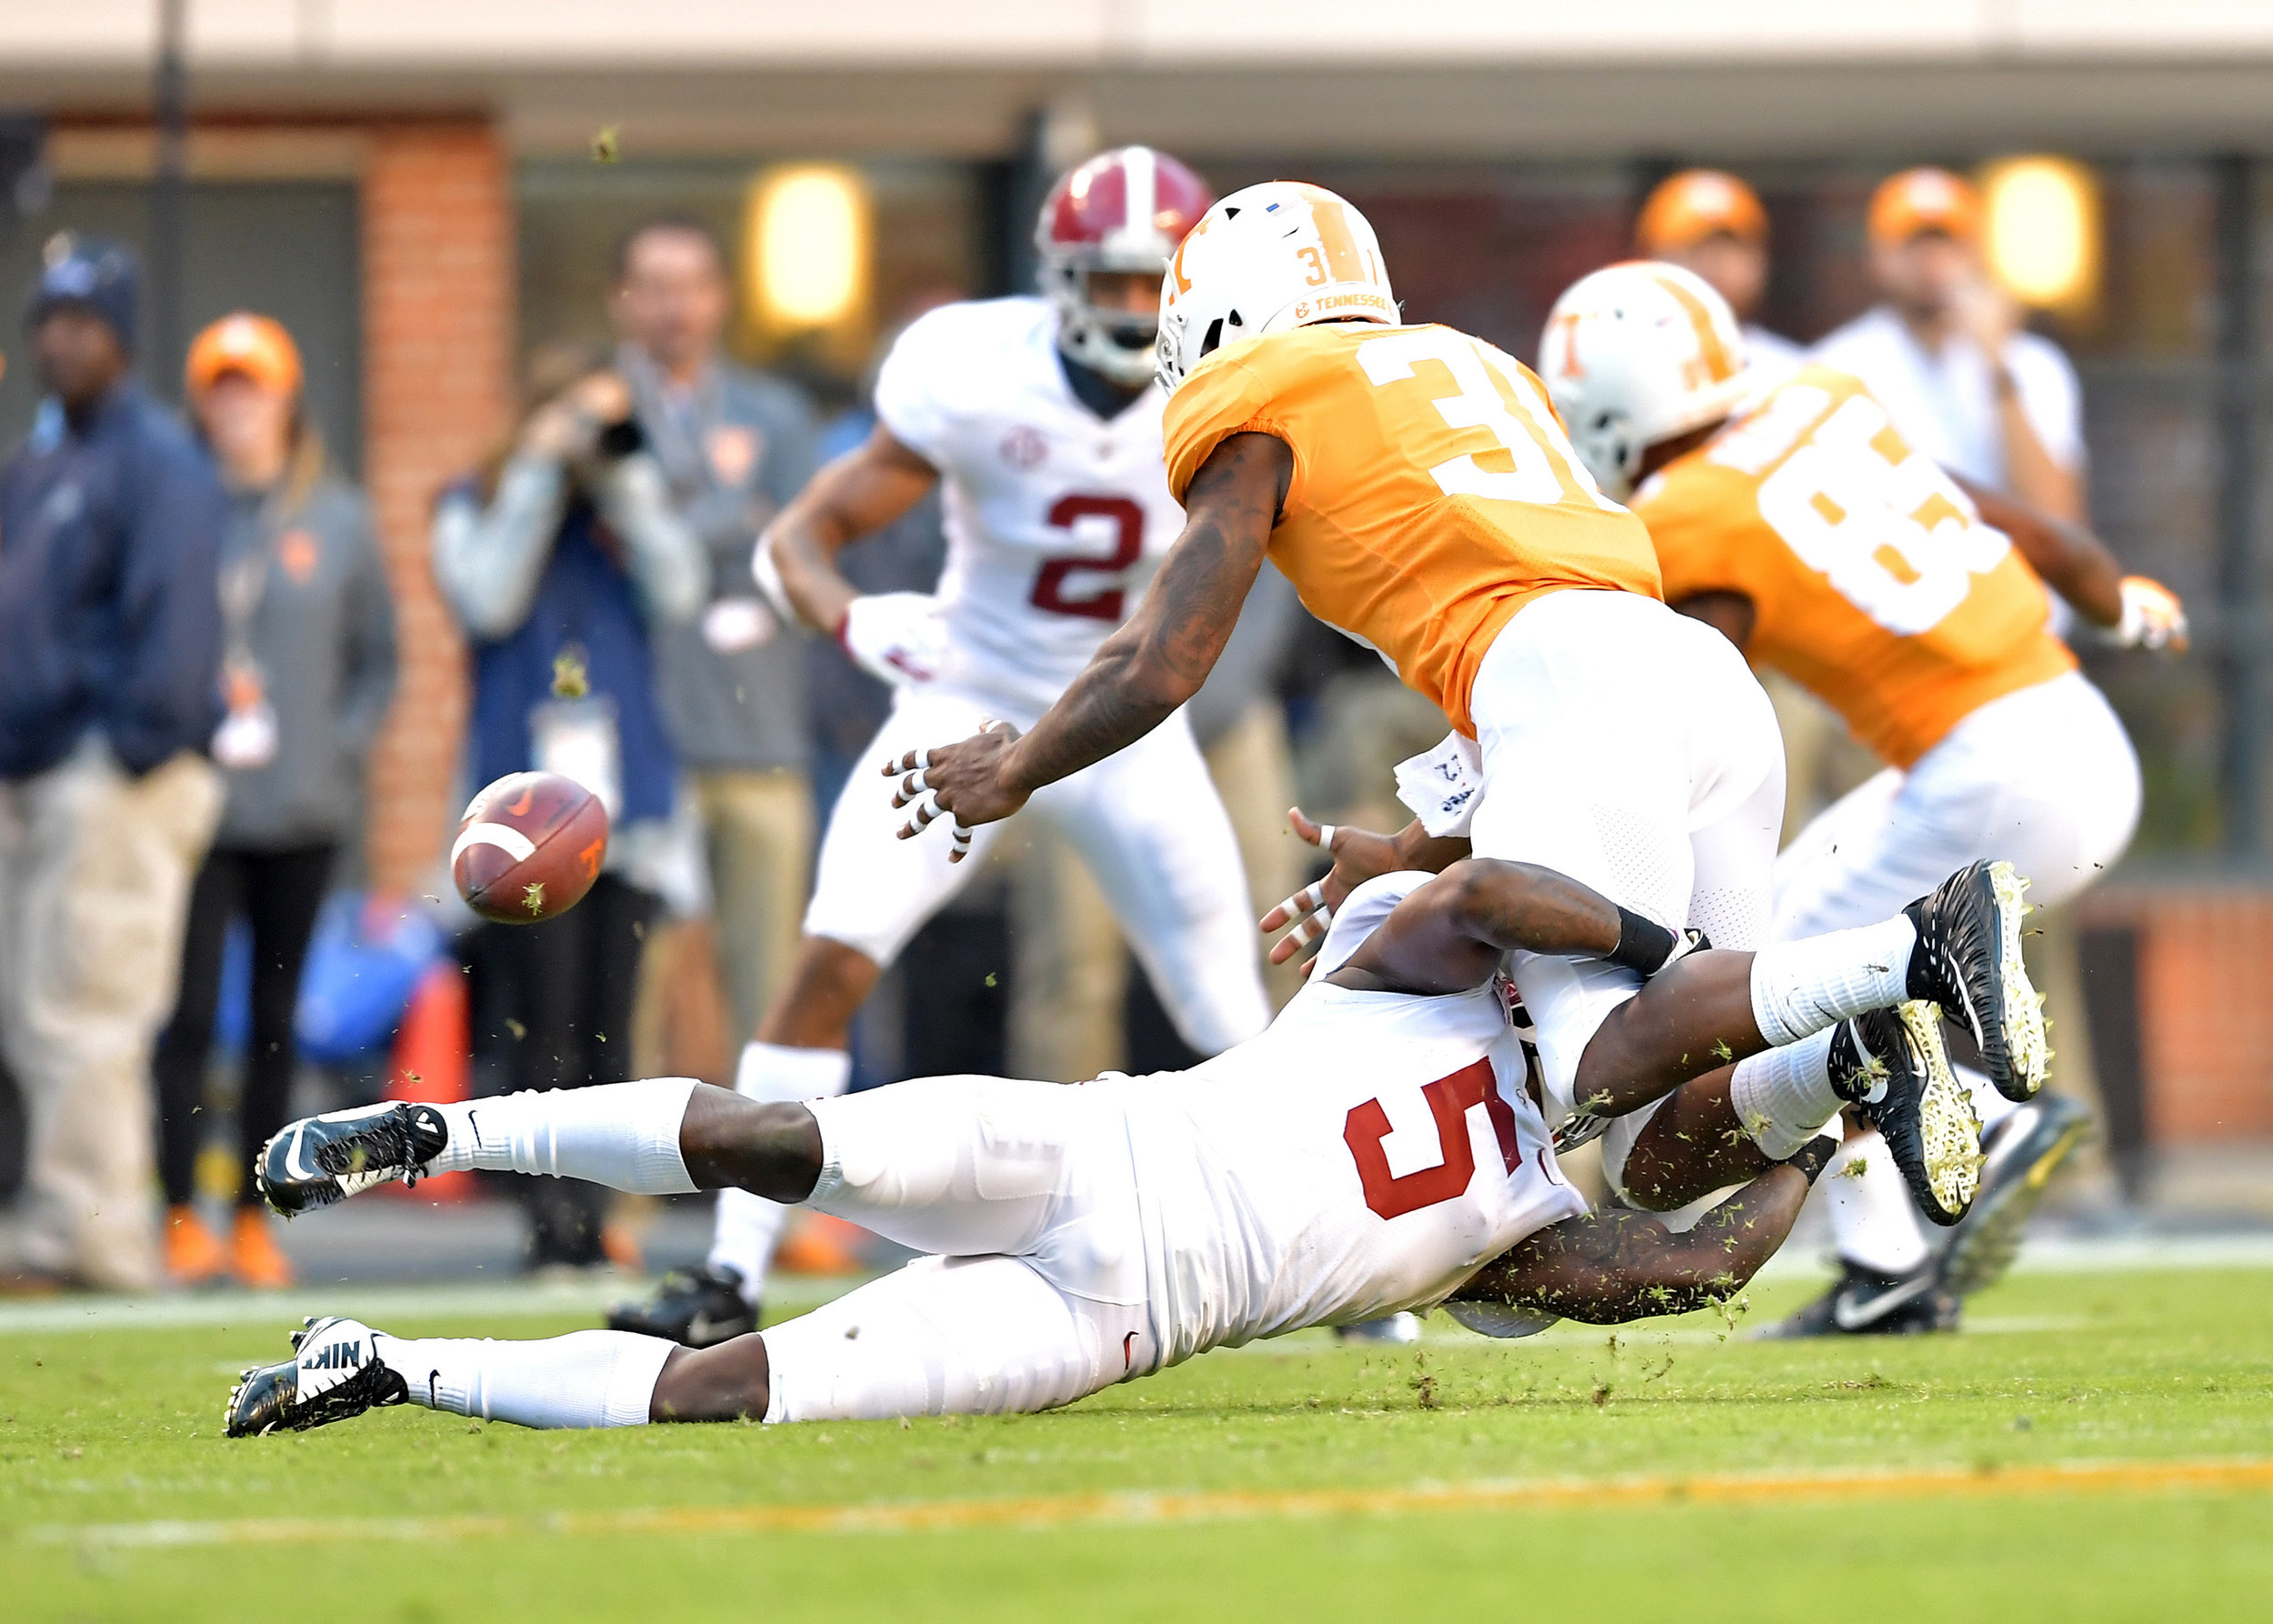 Alabama Crimson Tide defensive back Shyheim Carter (5) forces a fumble while tackling Tennessee Volunteers running back Madre London (31) in the second half of the NCAA football game on Saturday, Oct. 20, 2018, at Neyland Stadium in Knoxville. Tenn. Alabama wins 58-21. (Photo by Lee Walls)